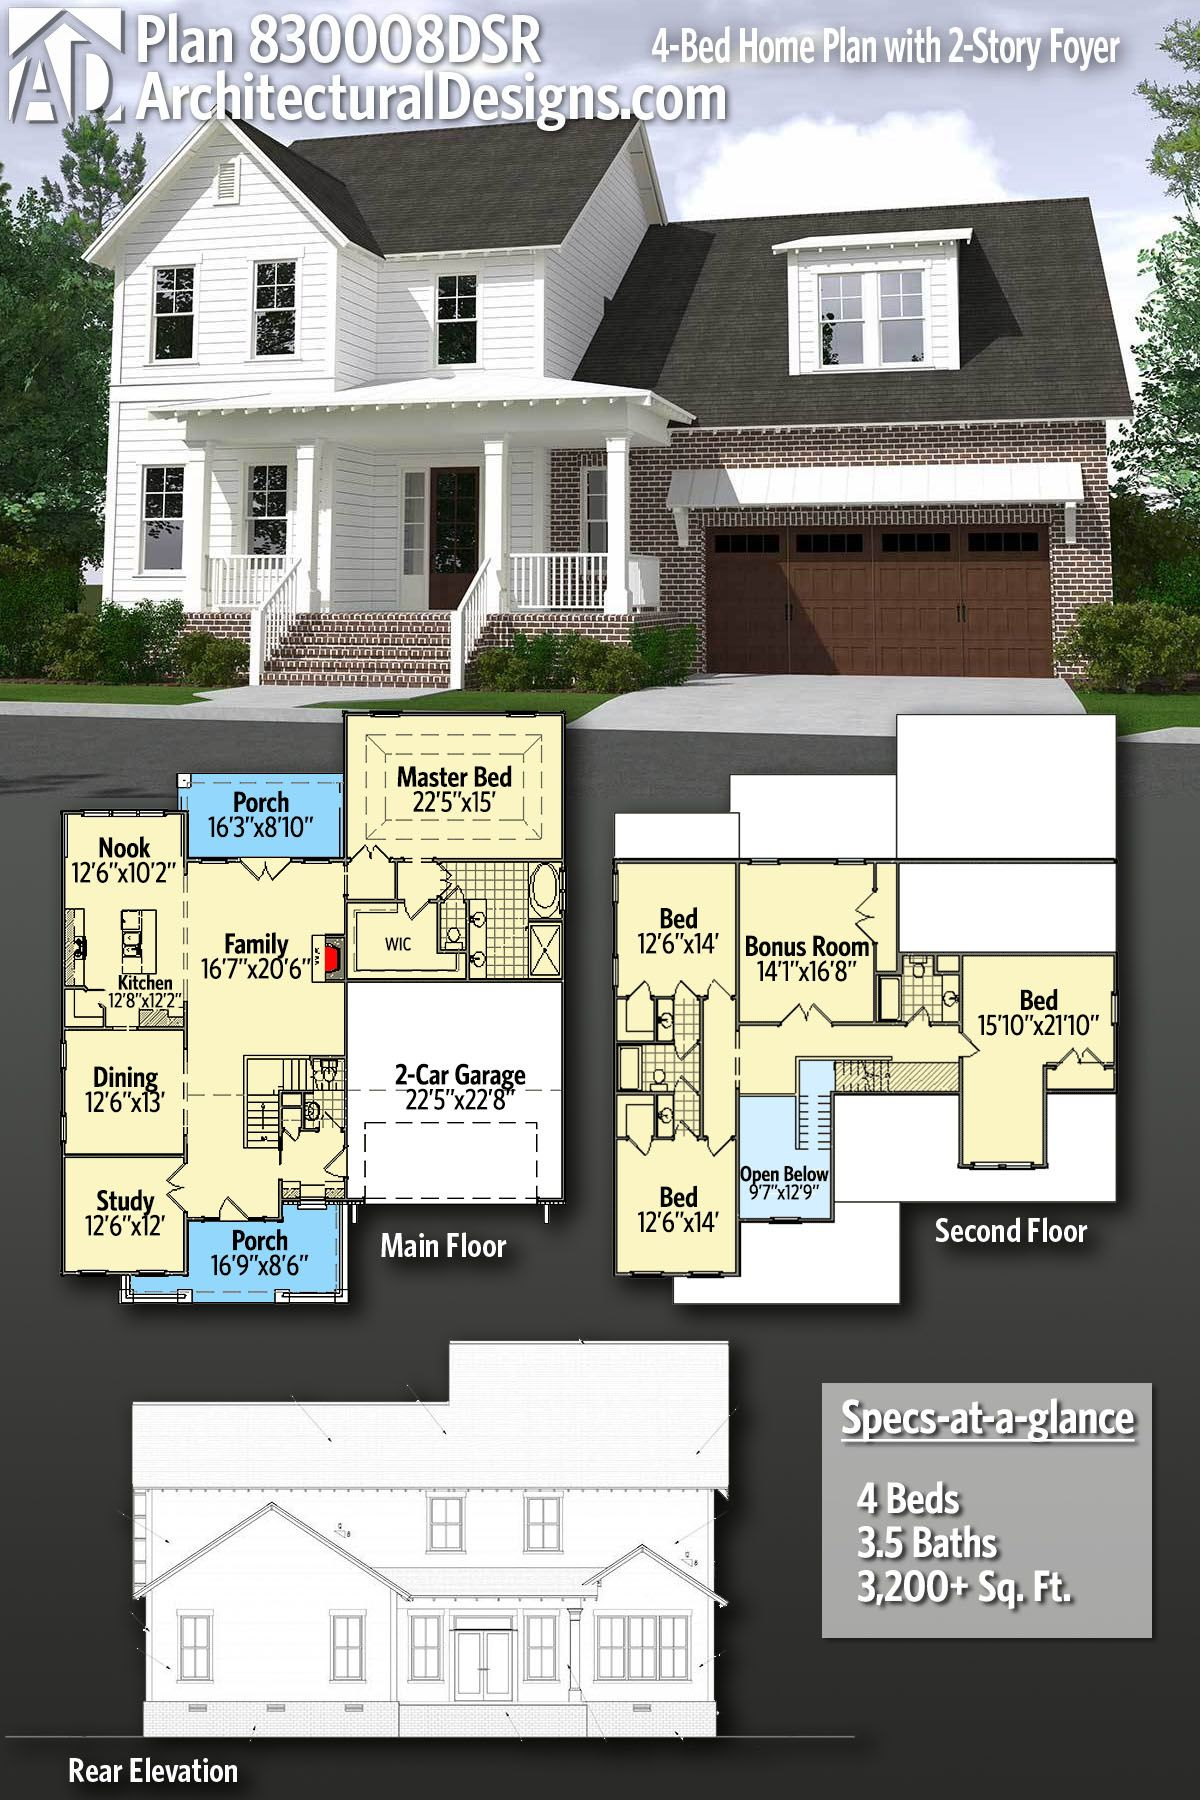 Plan 830008dsr 4 Bed Home Plan With 2 Story Foyer 住宅 間取り ハウス 間取り